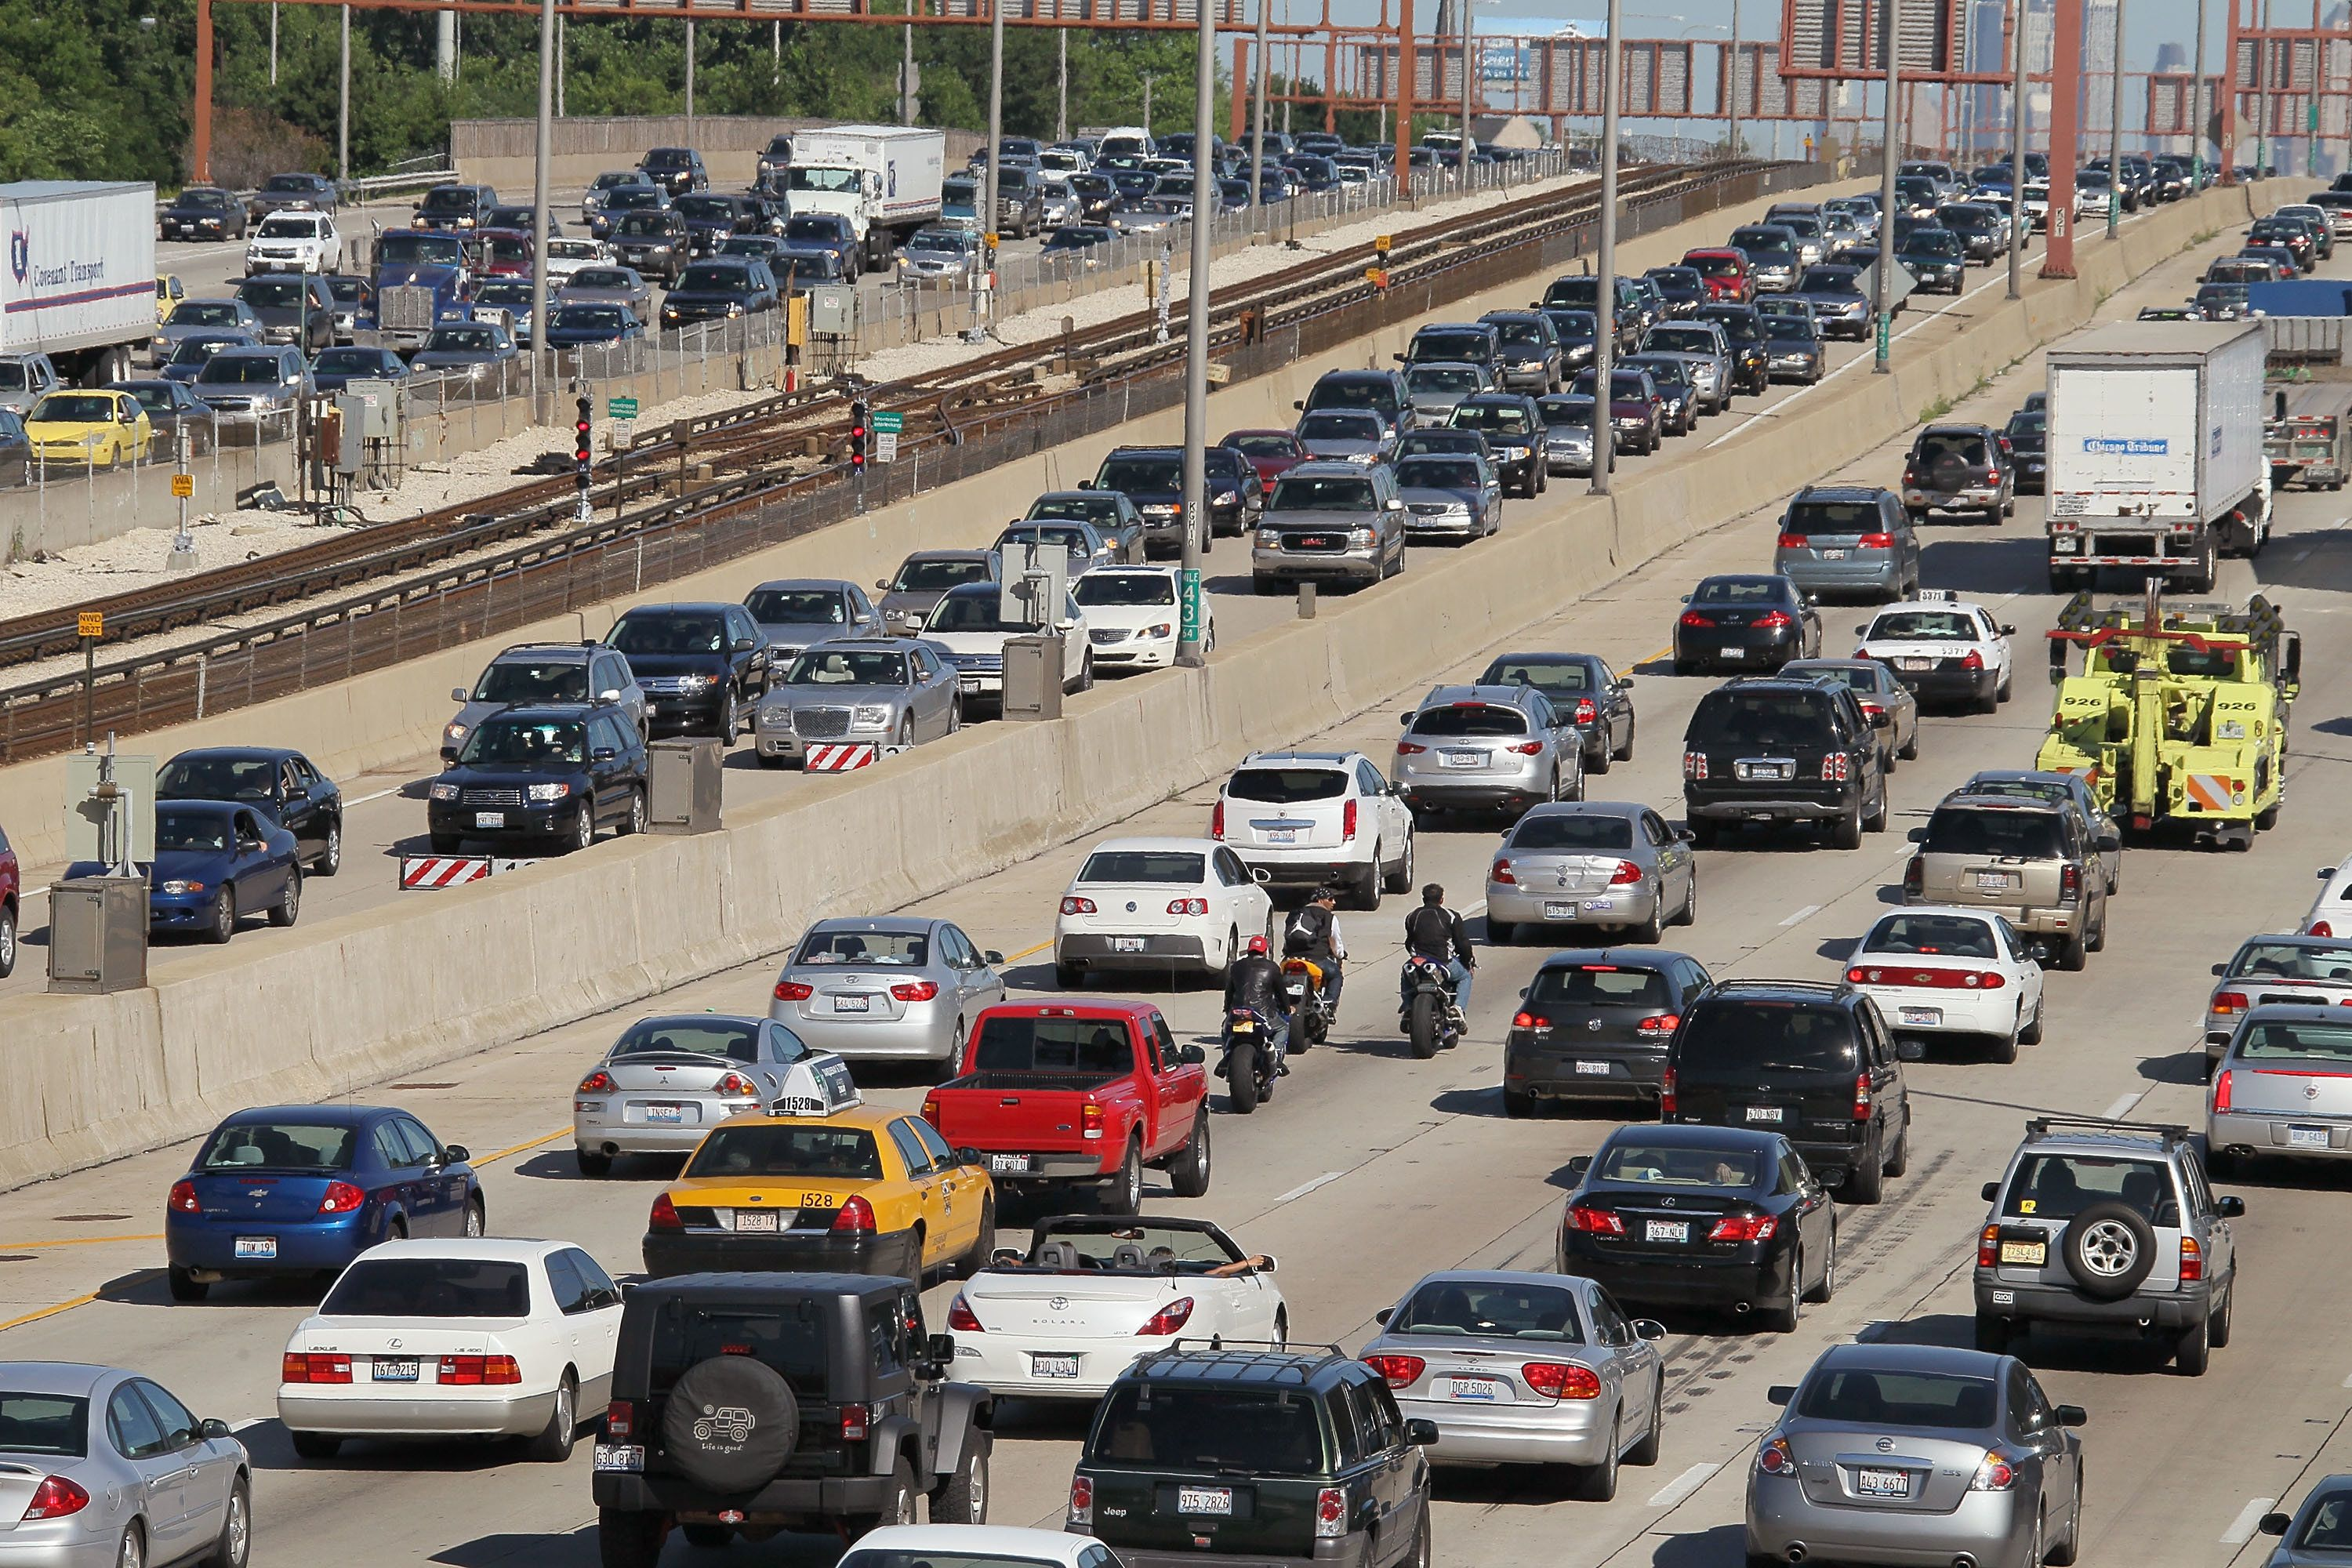 Despite higher prices, automobile travel is expected to increase for the fourth straight year.